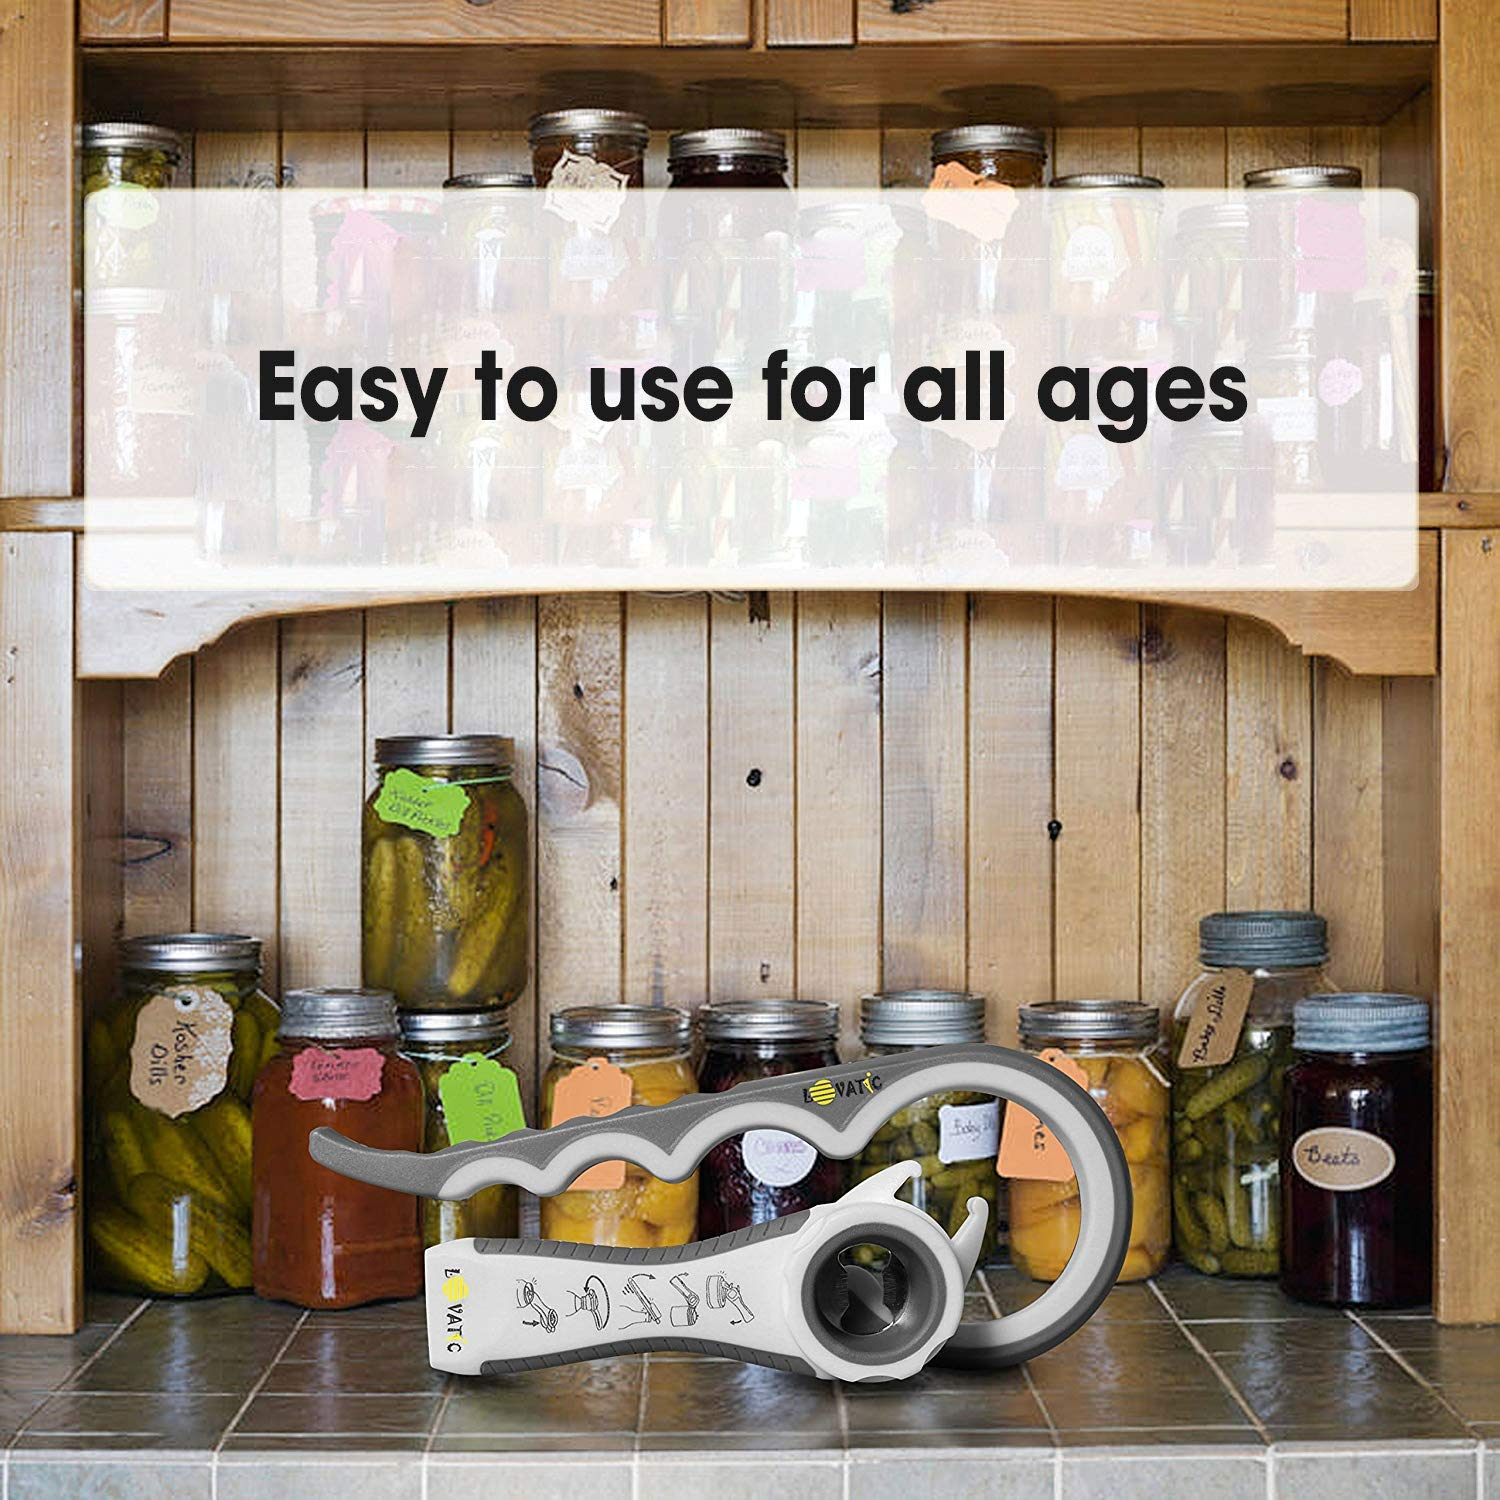 Elders and Arthritis Sufferers RINUZ Can and Jar Opener Easily Apply for Variety of Kitchen Cans and Bottles Quick Opening for Cooking Simple To Use Ergonomic Bottle Opener for Seniors